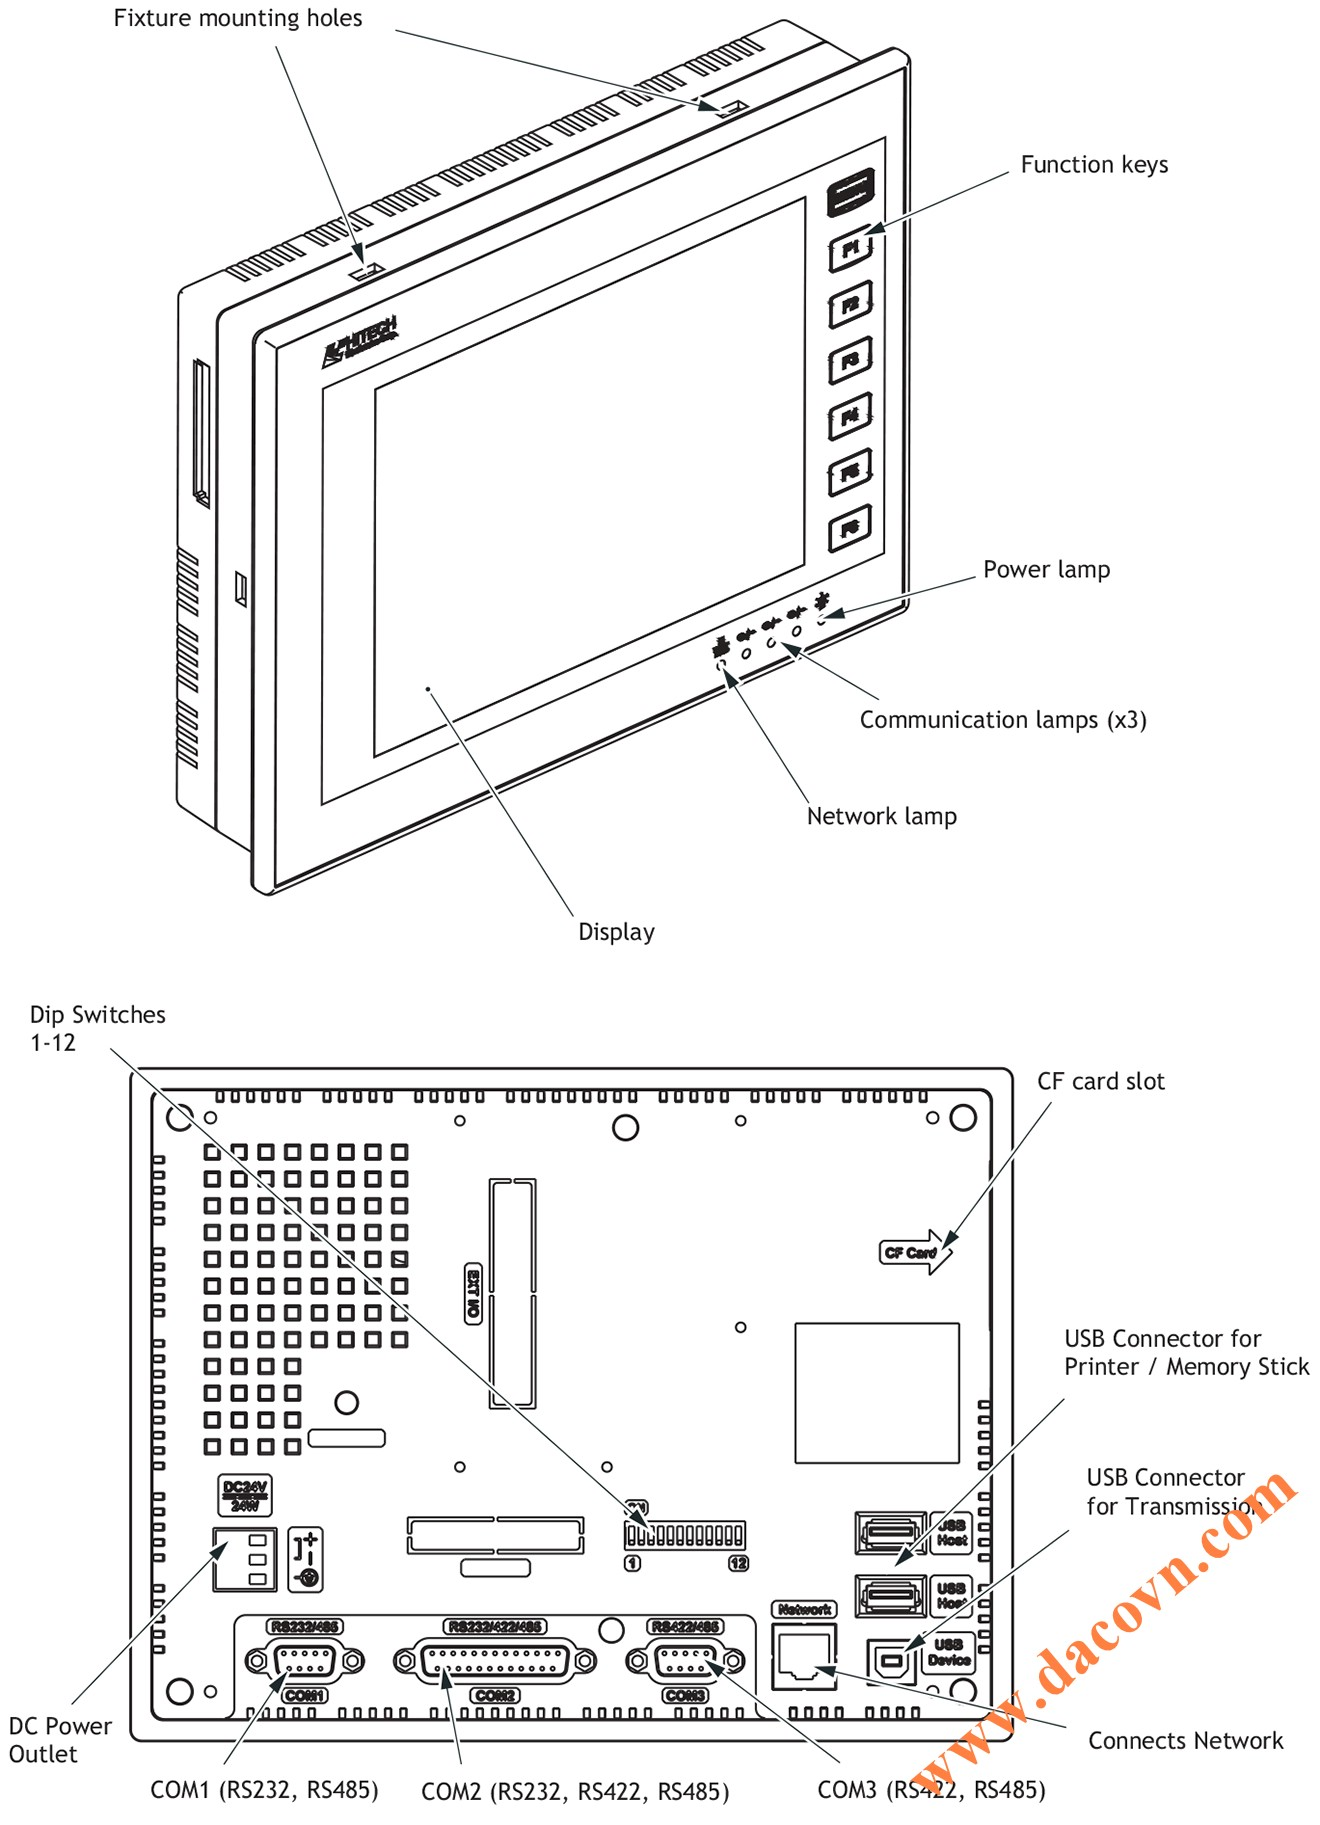 Rs422 Wiring Diagram | Wiring Library